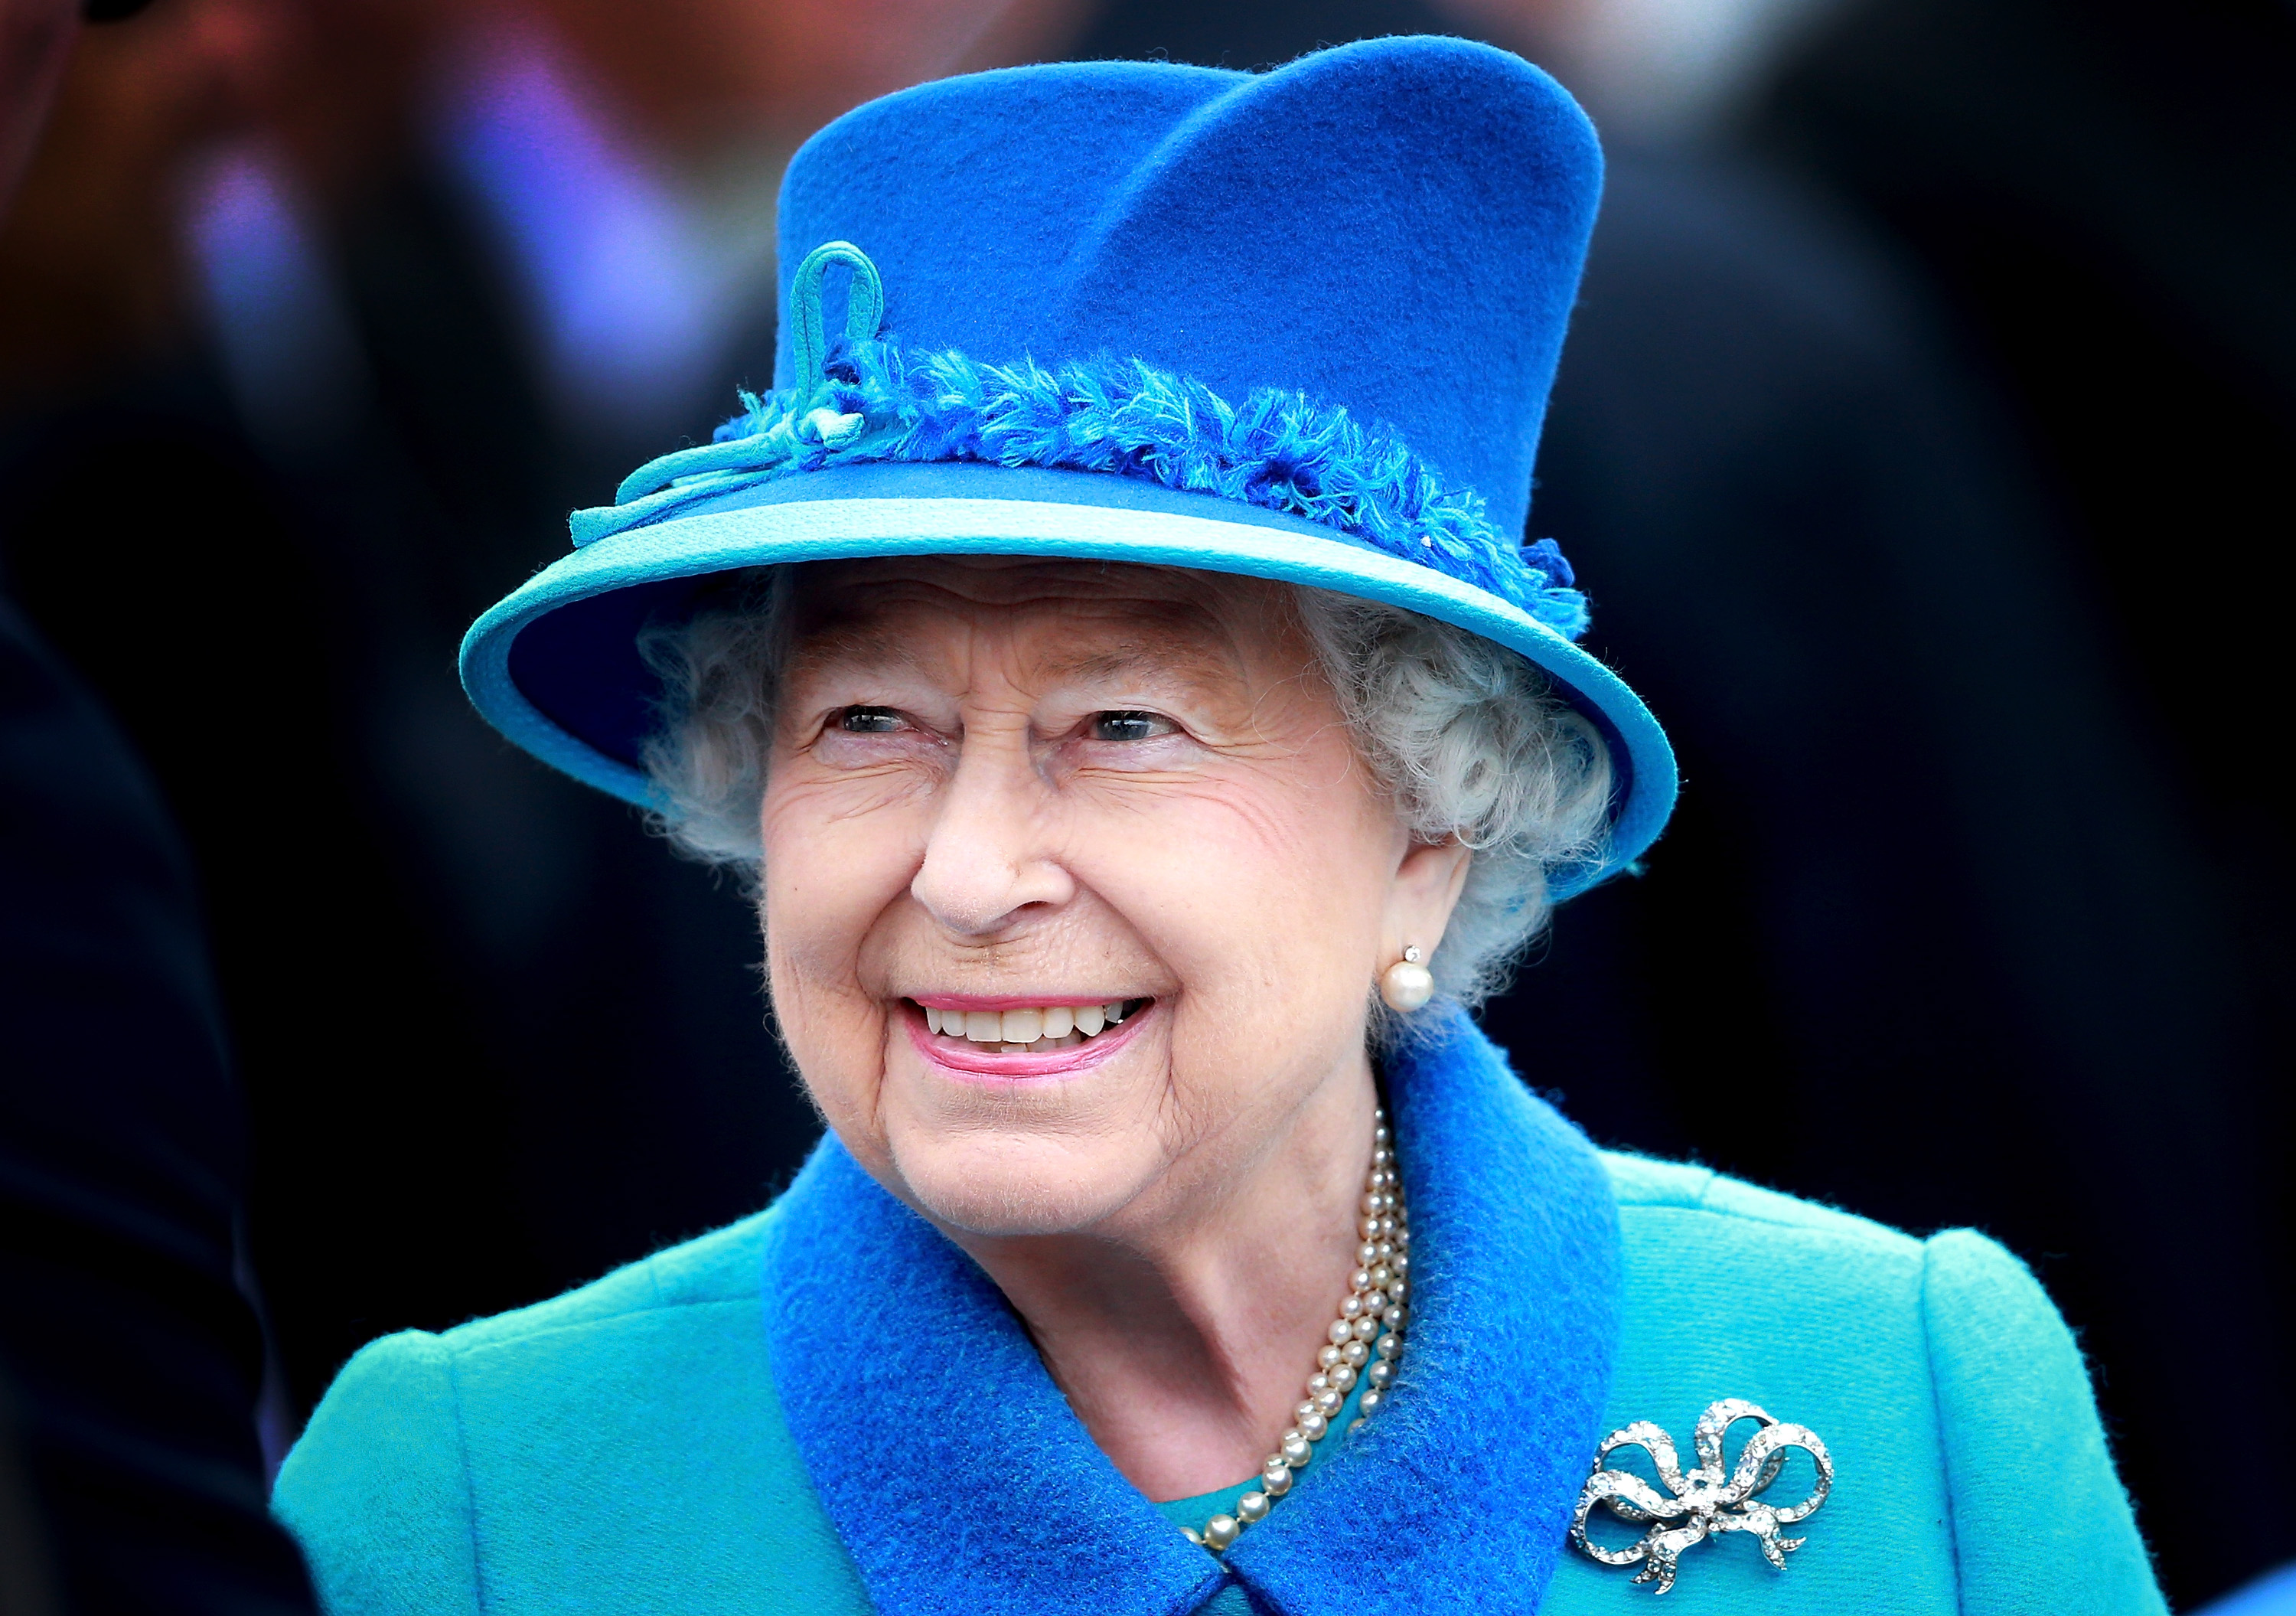 Queen Elizabeth II smiles as she arrives at Tweedbank Station on September 9, 2015 in Tweedbank, Scotland.